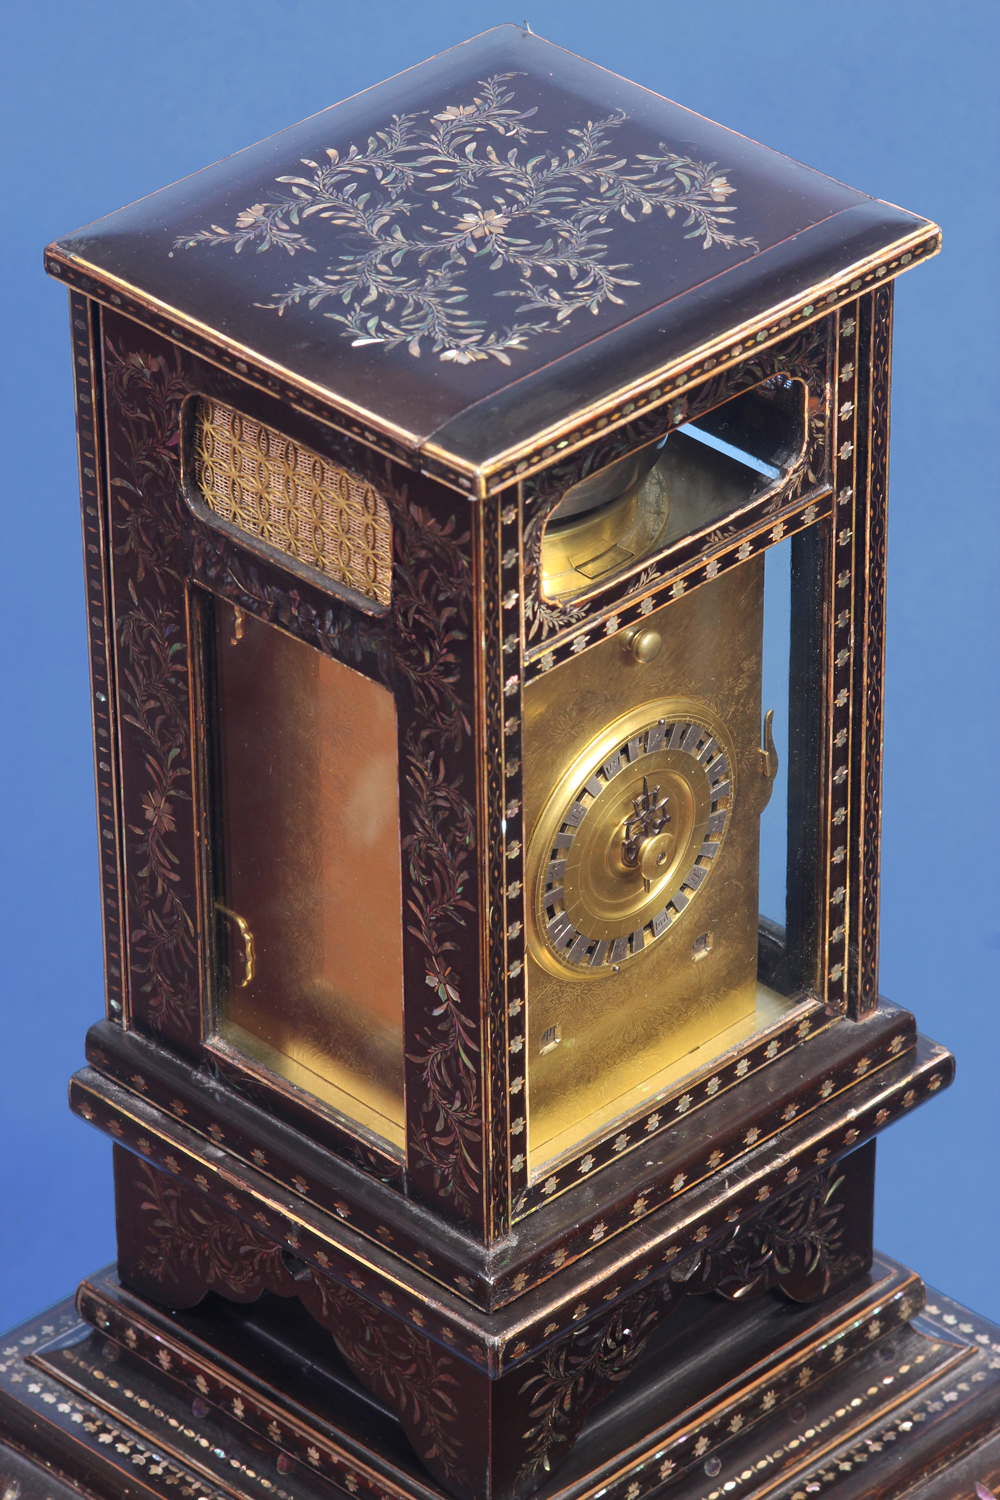 Early 19th century rare Japanese lantern clock.